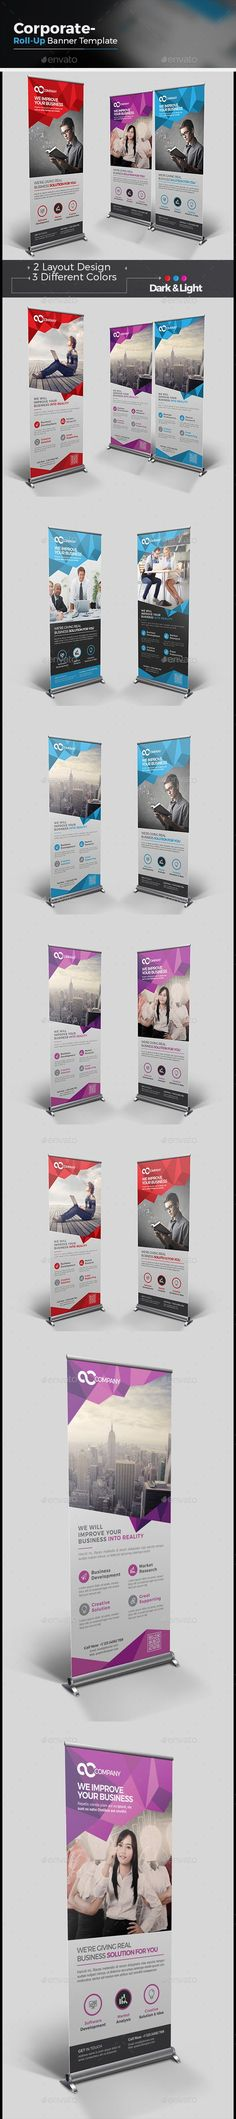 47b74970f1d6 Corporate Roll-up Banner - Signage Print Templates Rollup Display